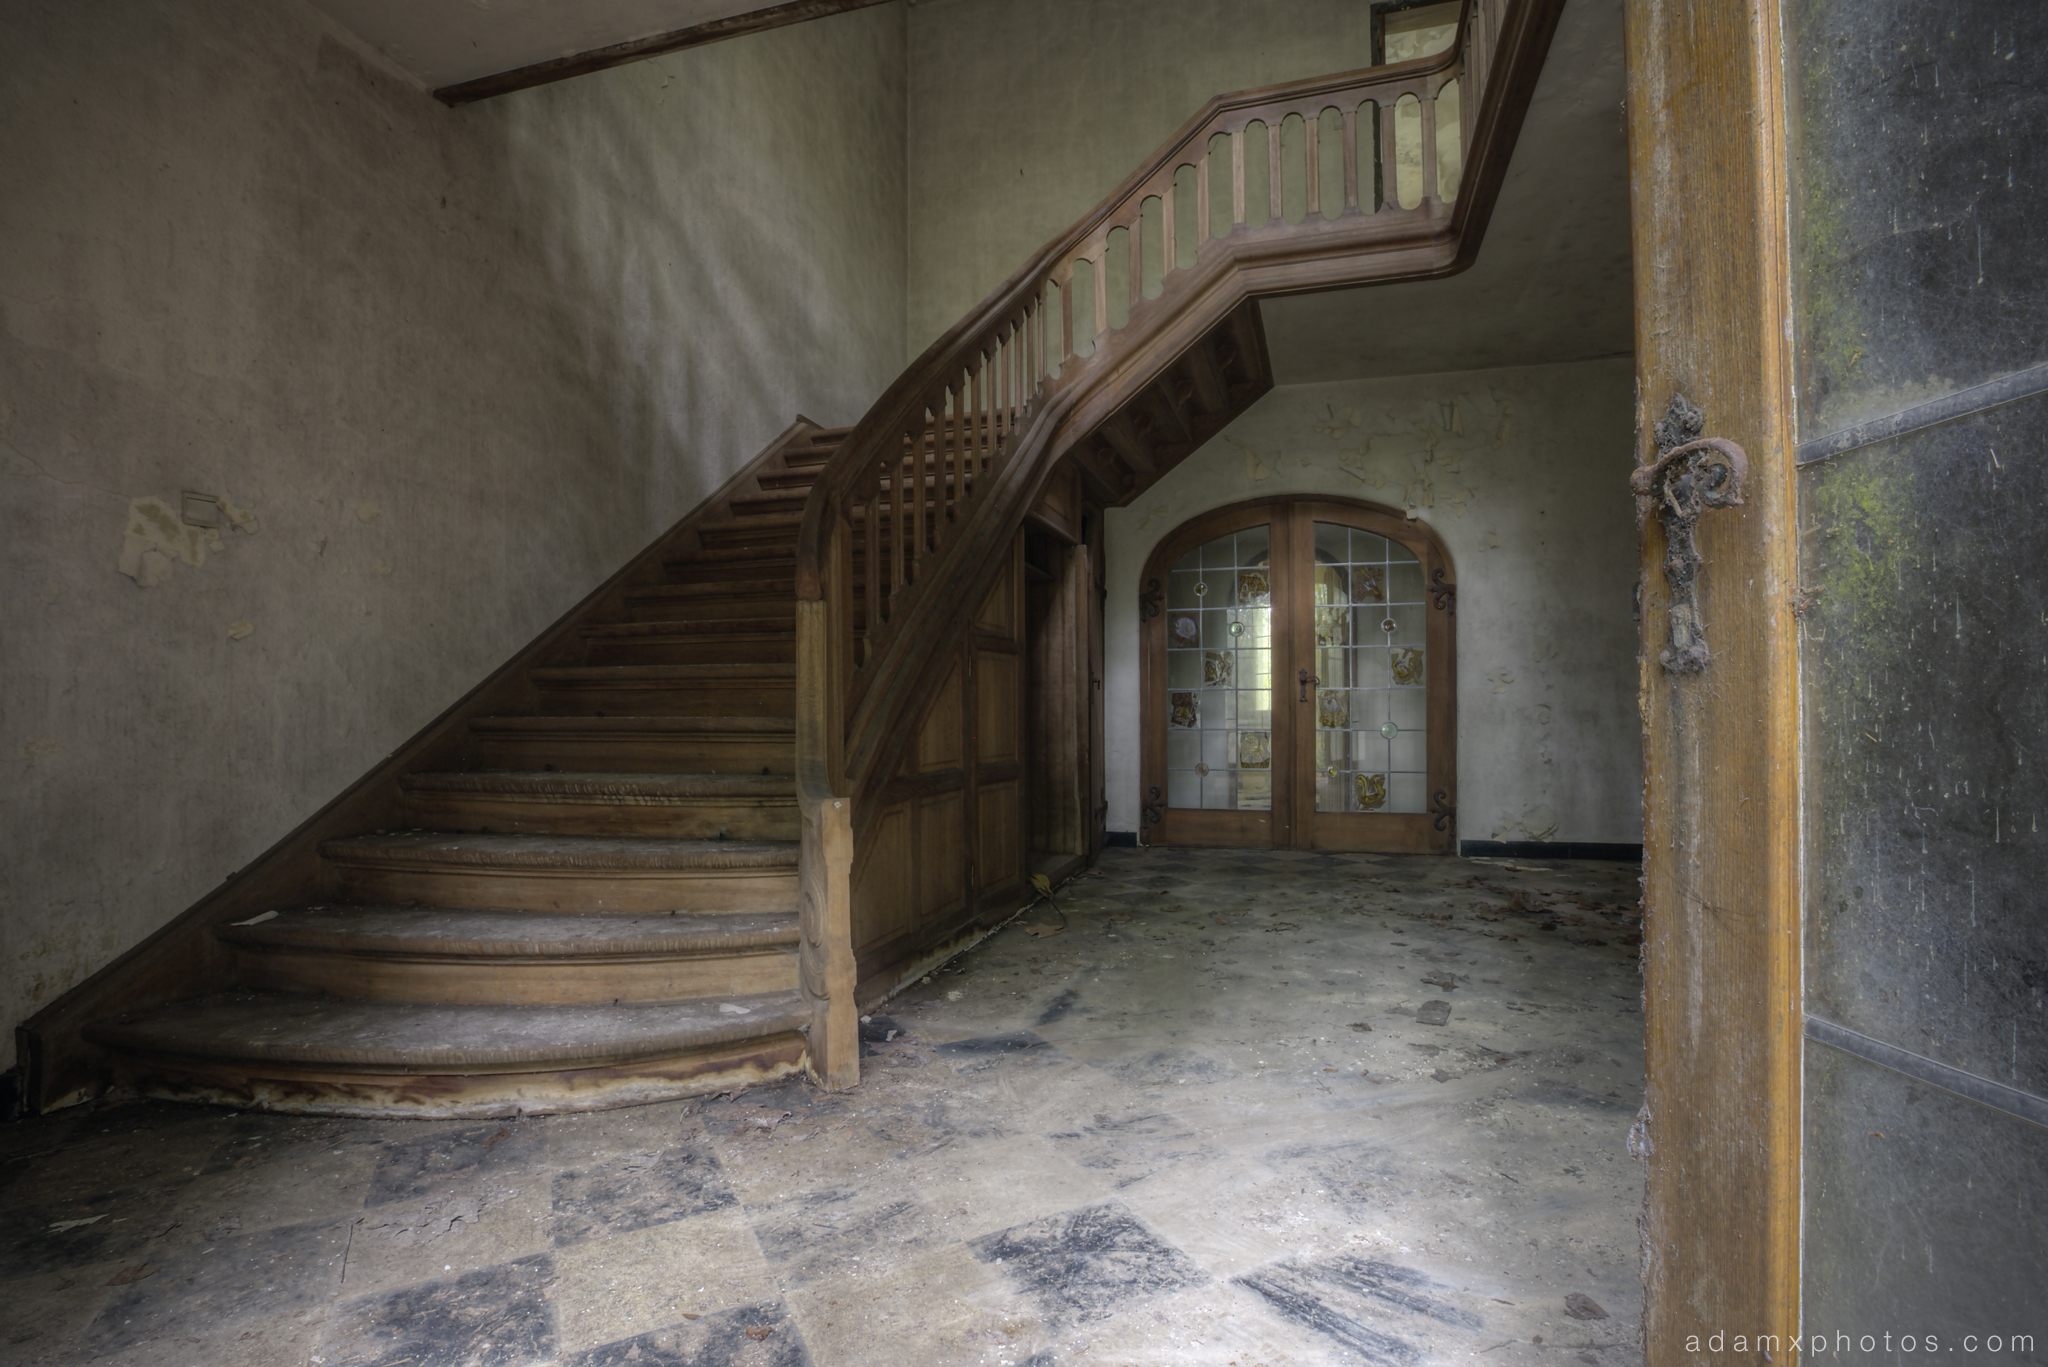 Downstairs entrance stairs staircase grand Adam X Urbex UE Urban Exploration Belgium Villa Maison SS House Townhouse abandoned derelict unused empty disused decay decayed decaying grimy grime collapsing overgrown